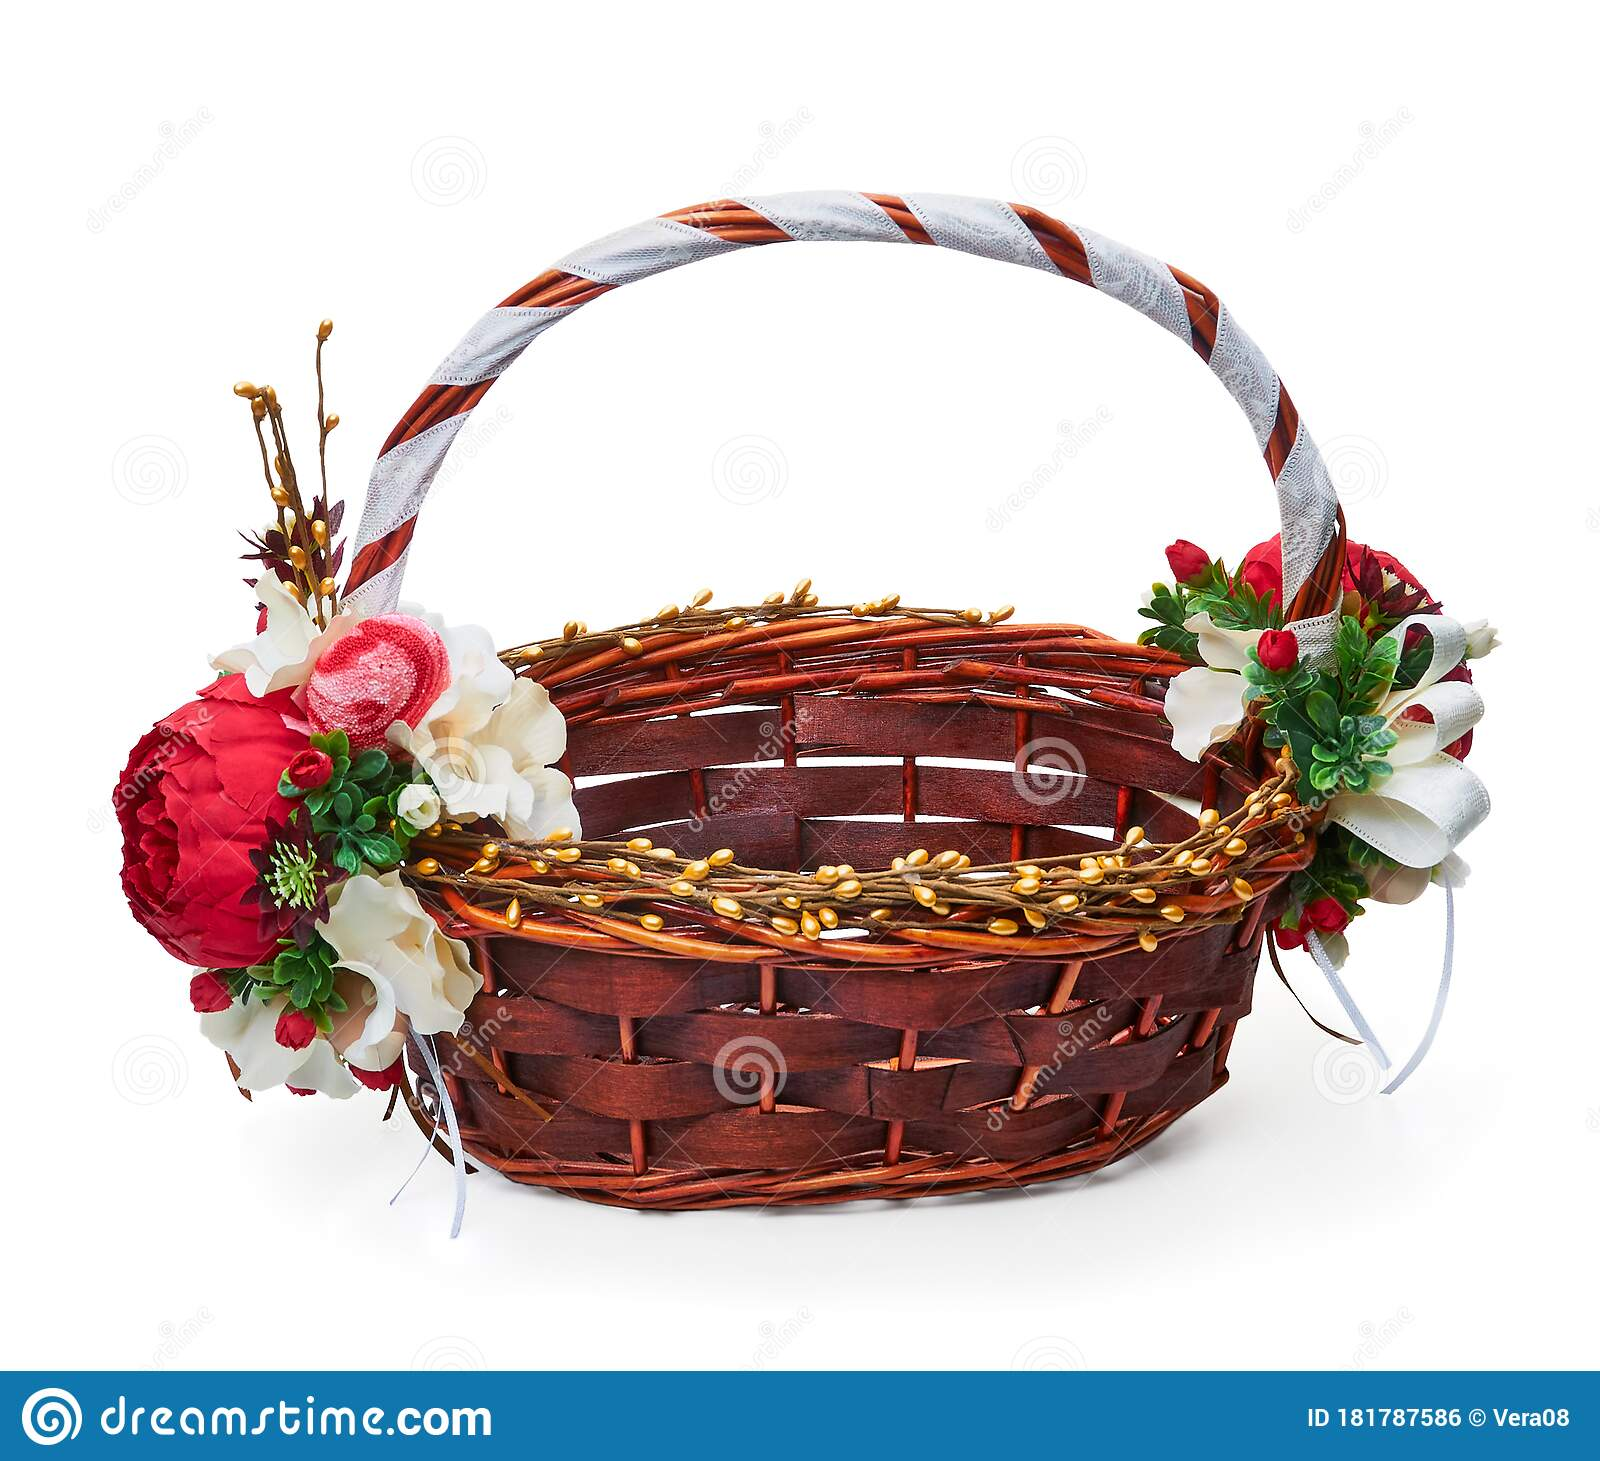 Festive Basket With A Flower Arrangement Stock Photo Image Of Isolated Festive 181787586